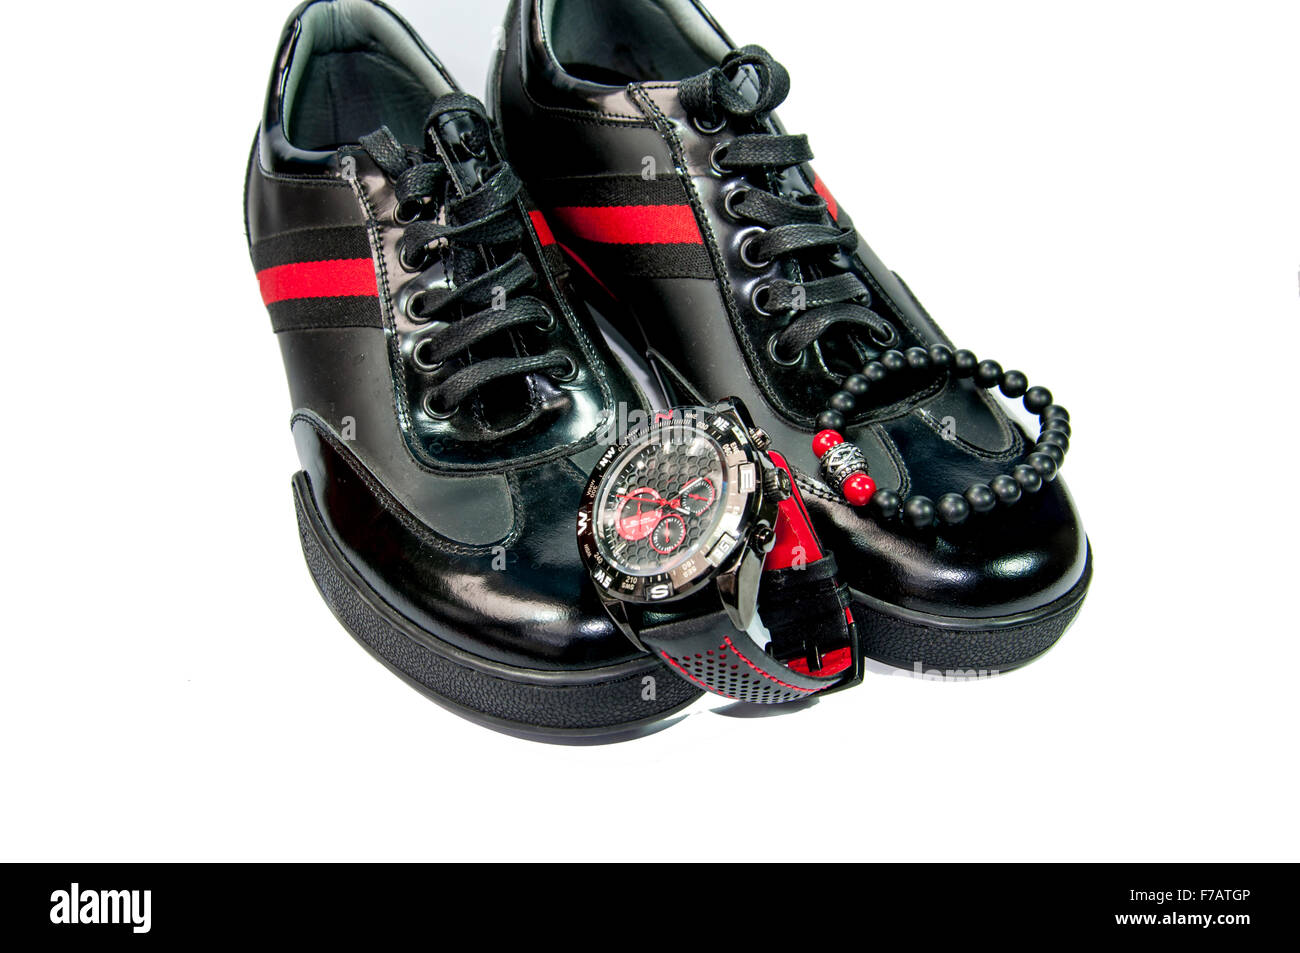 Black men shoes with red stripe, watch and bracelet isolated by white background - Stock Image